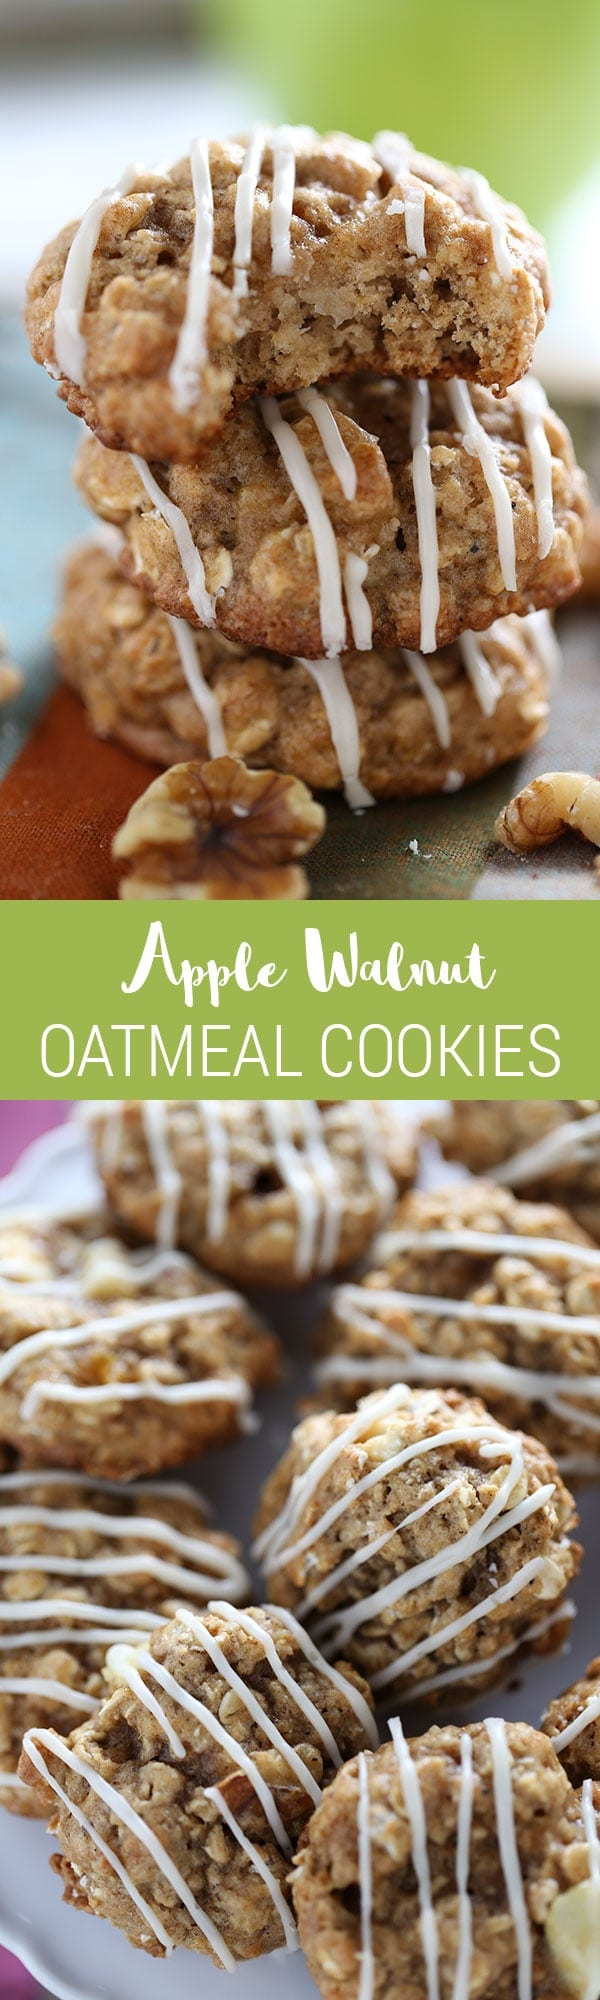 These are SO GOOD and SO EASY! No mixer needed, and they take just 30 minutes. Almost healthy, too!!